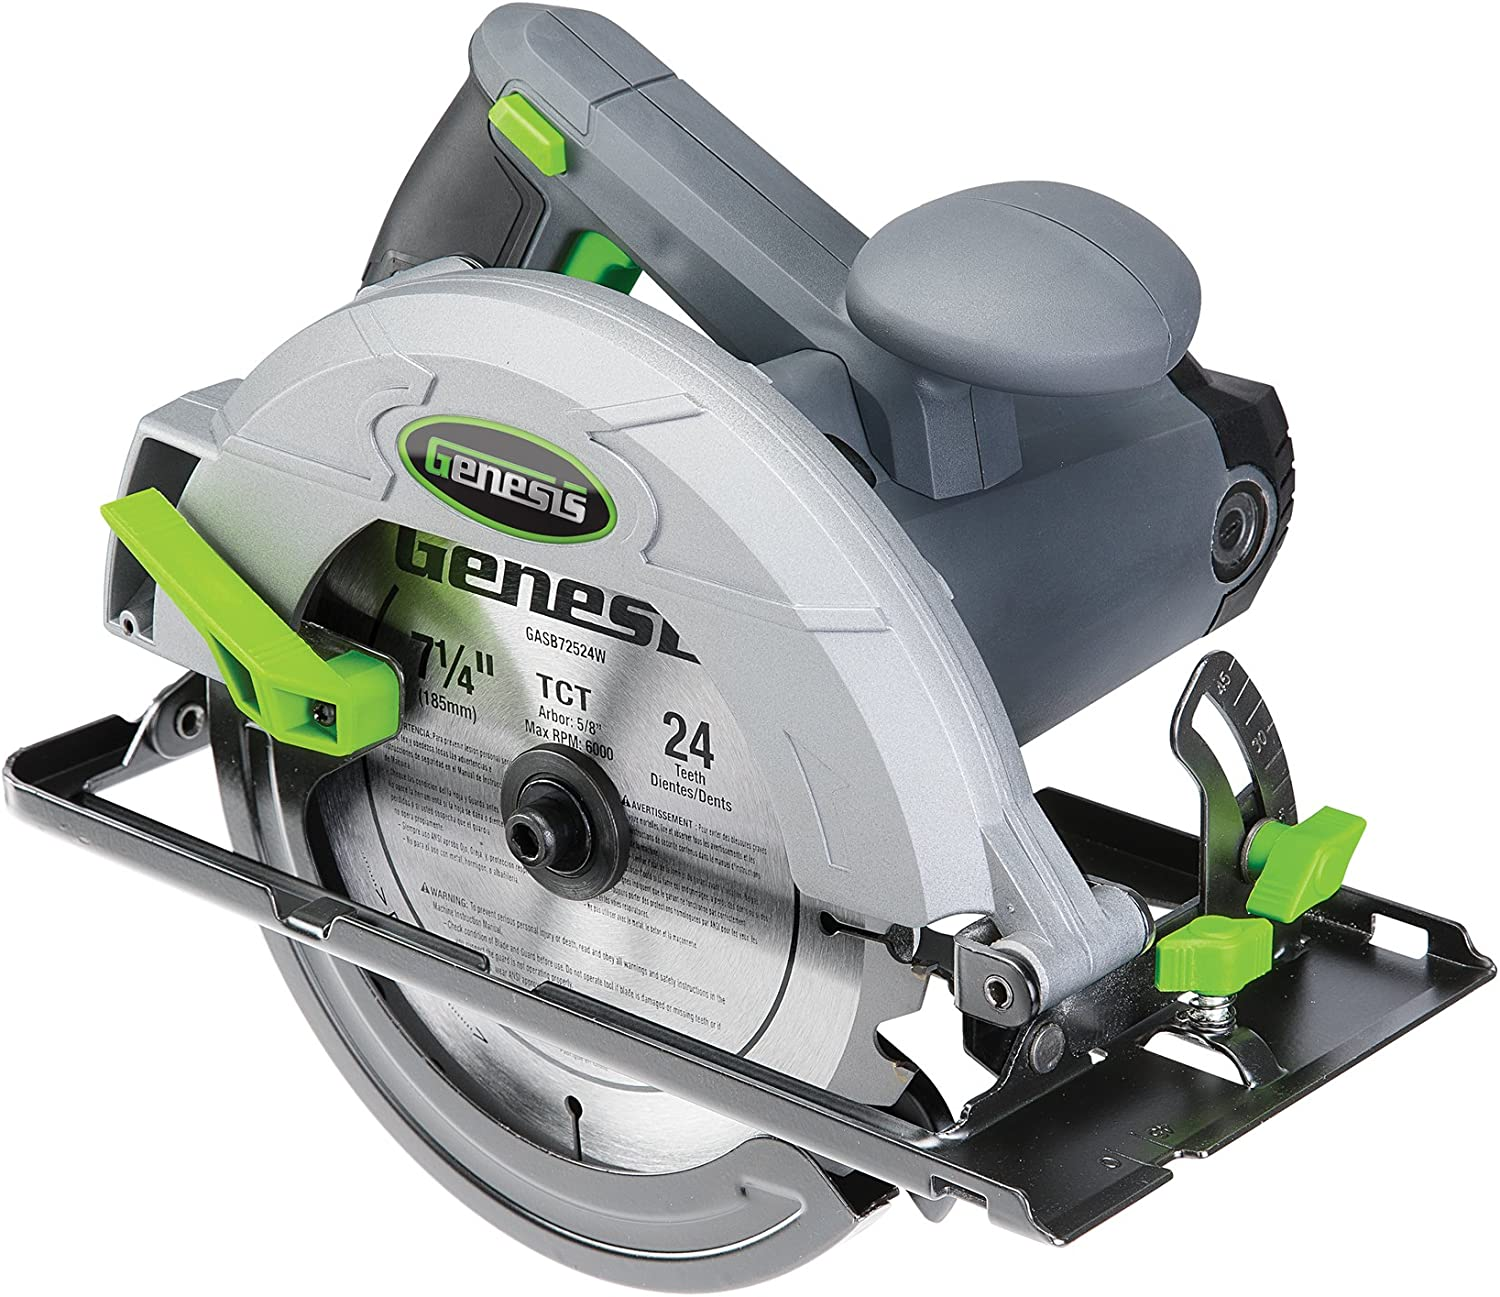 "Genesis GCS130 13 Amp 7 1/4"" Circular Saw with Metal Lower Guard, Spindle Lock, 24T Carbide Tipped Blade, Rip Guide, and Blade Wrench"